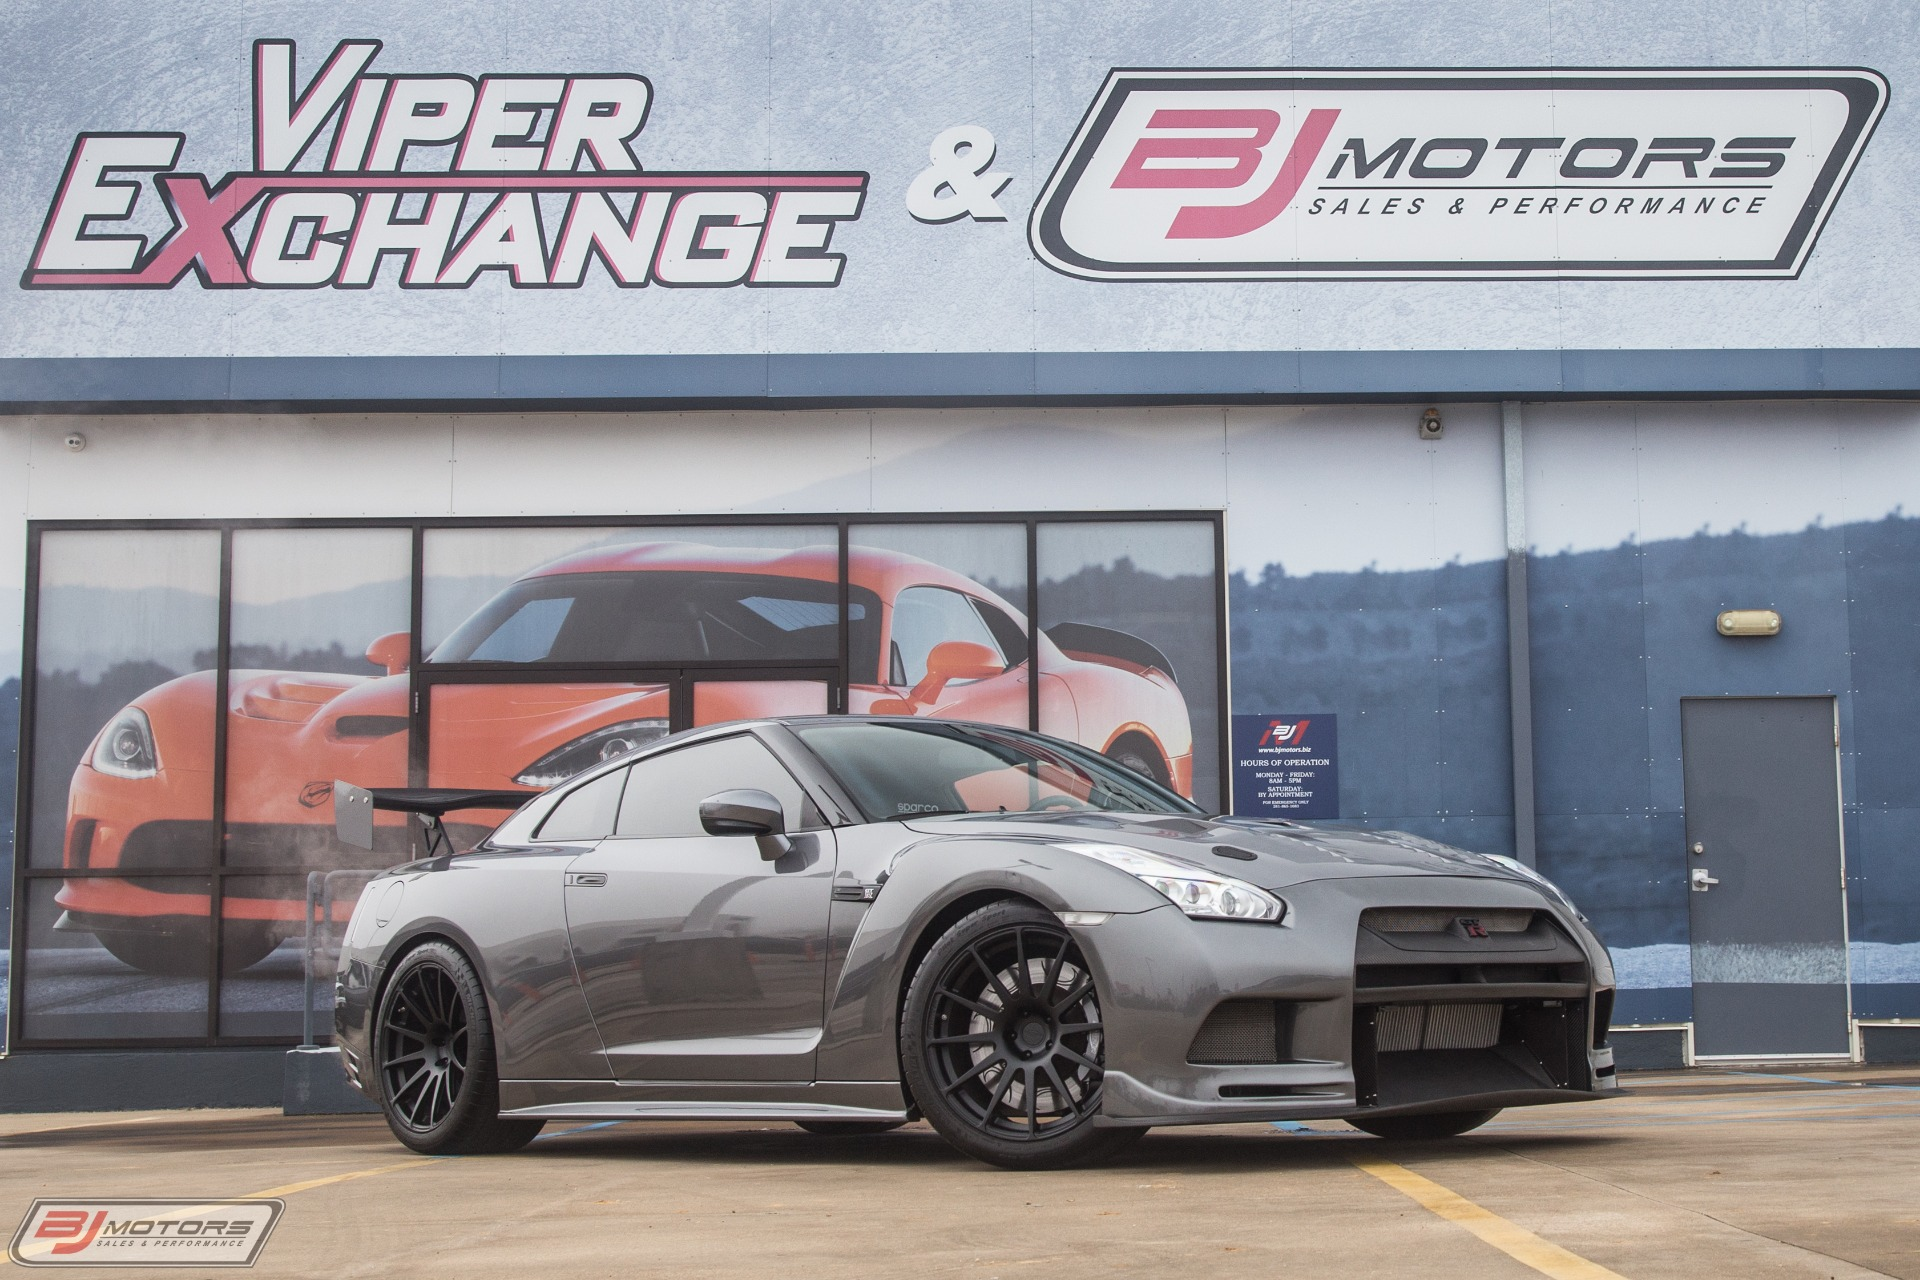 Used Nissan Gt-r for Sale Awesome Used 2014 Nissan Gt R Switzer for Sale $139 995